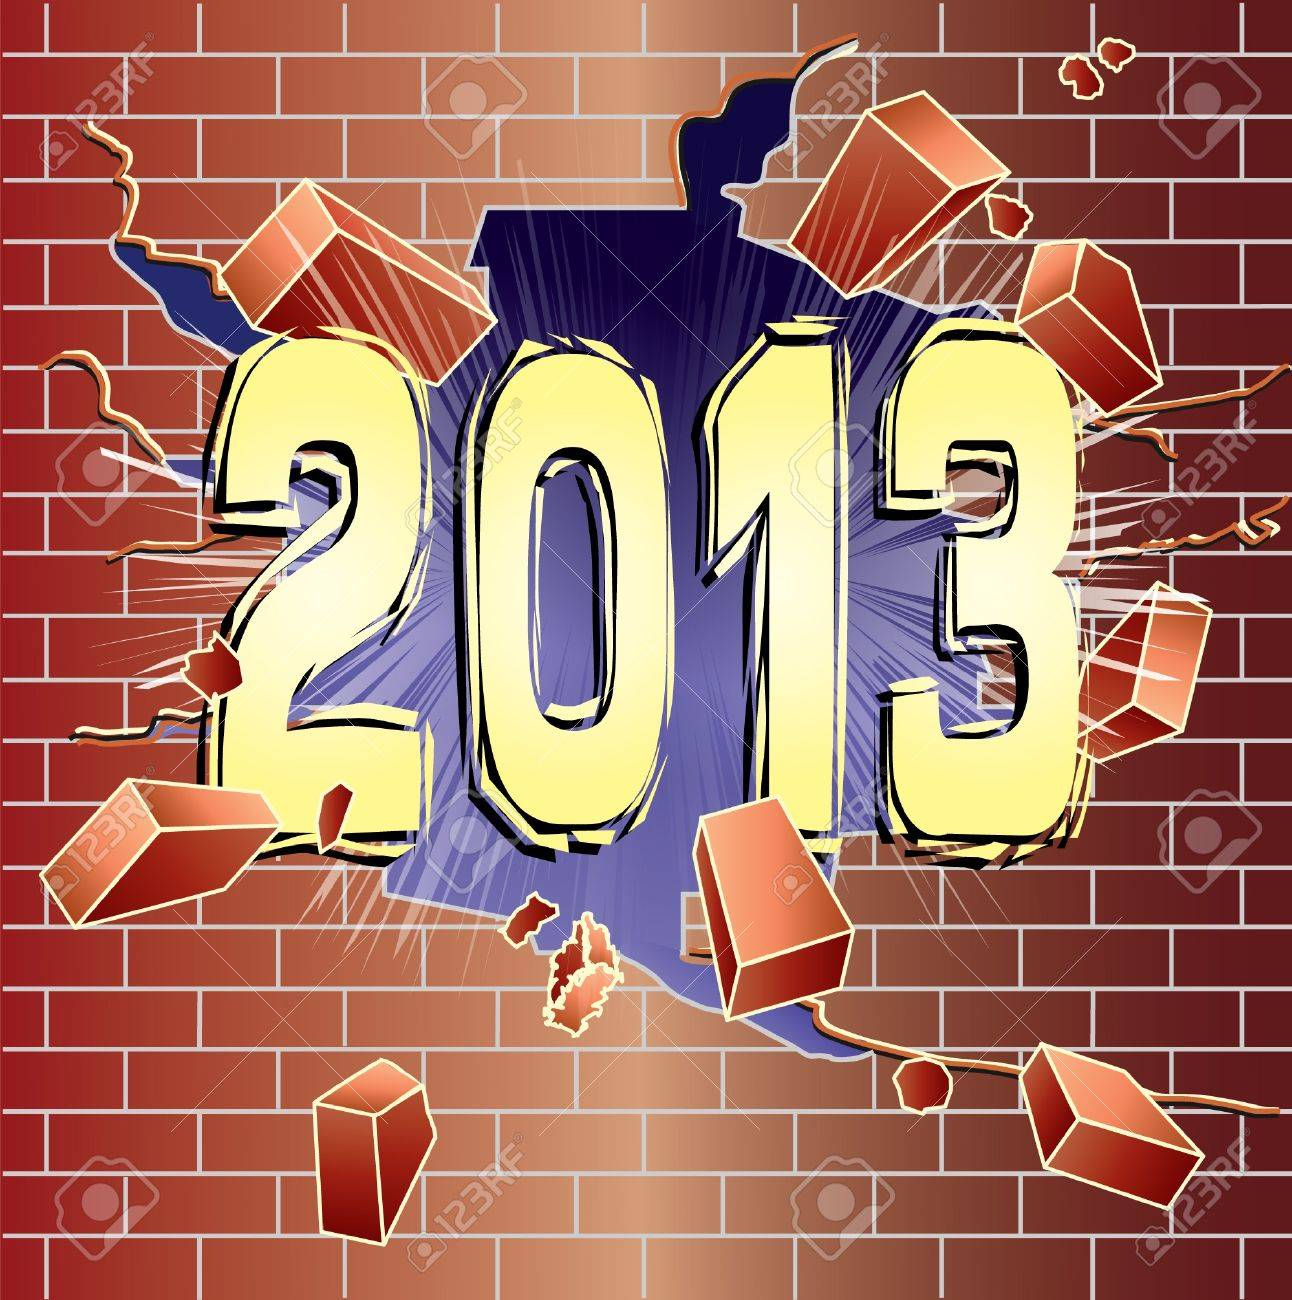 New Year 2013 breaking through red brick wall Stock Vector - 17668811